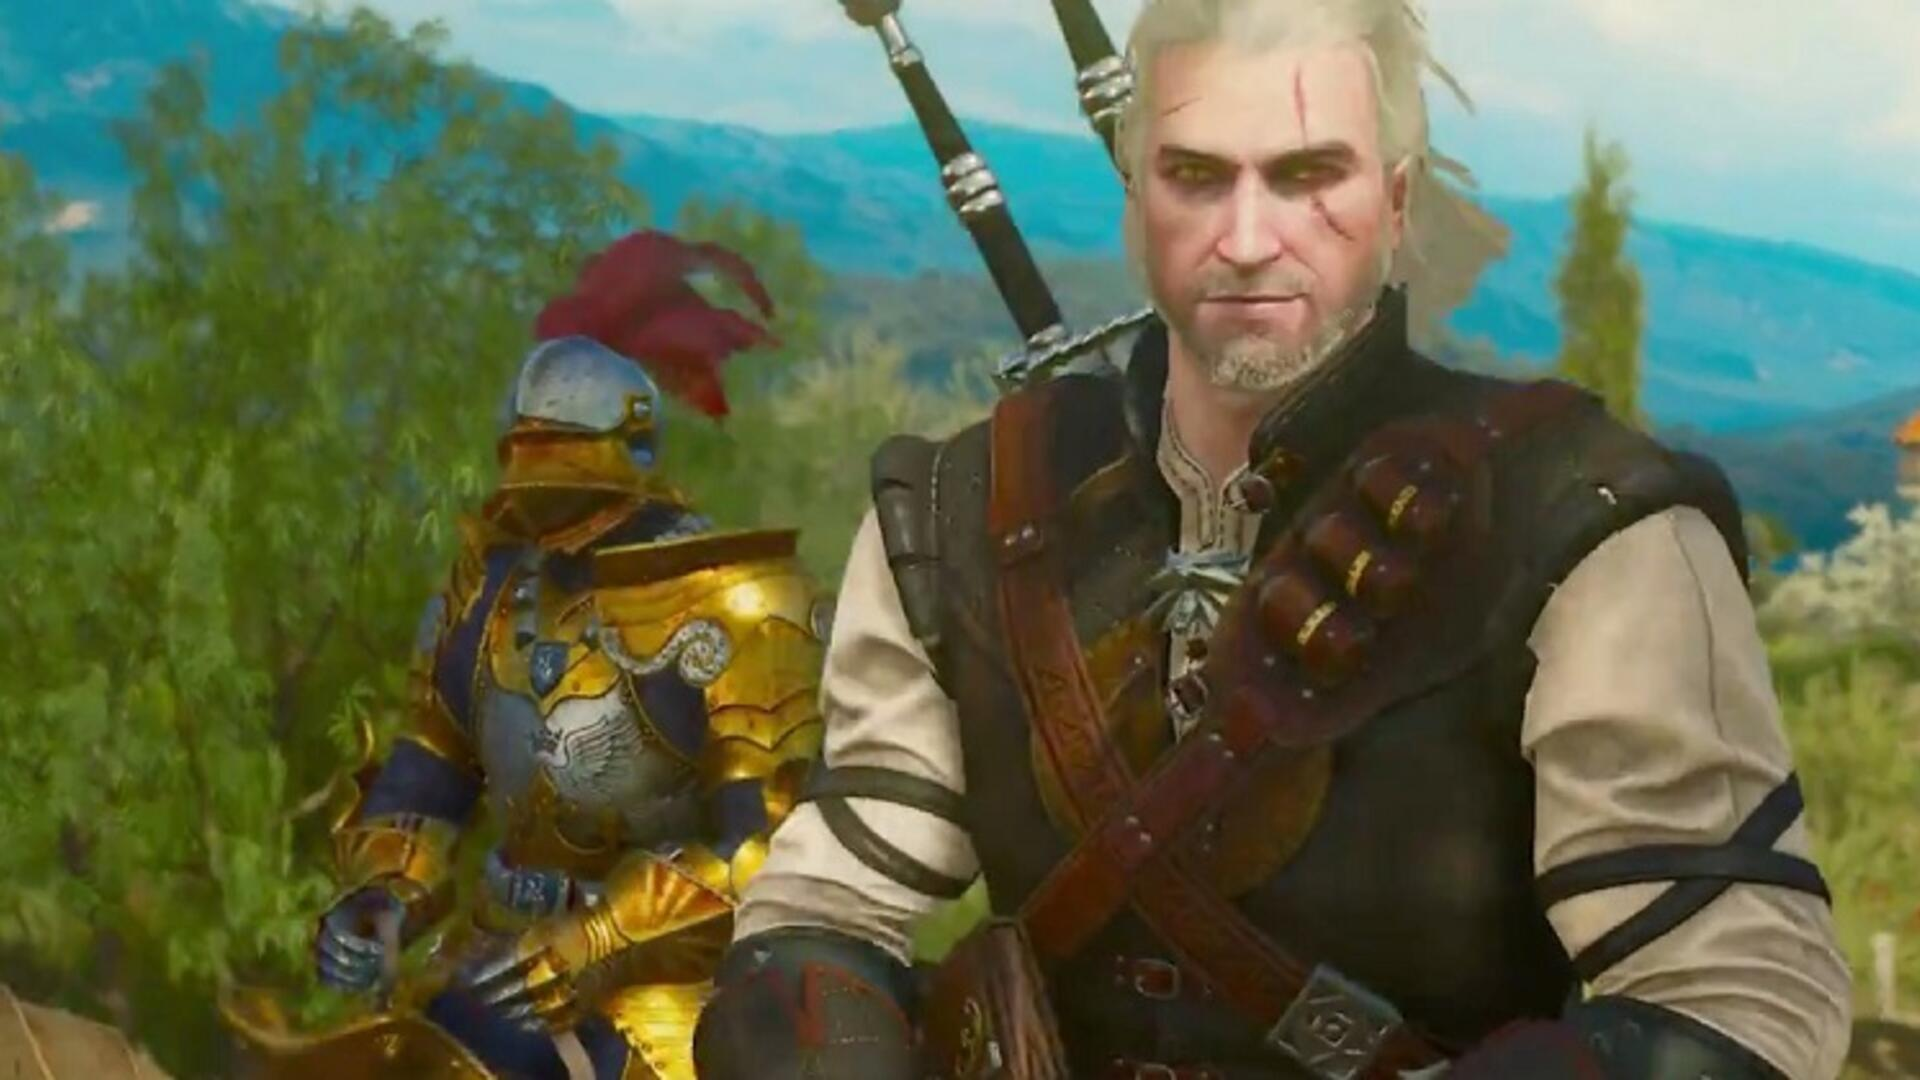 The Witcher 3 Manticore Gear - How to Get the Manticore Weapons and Armor